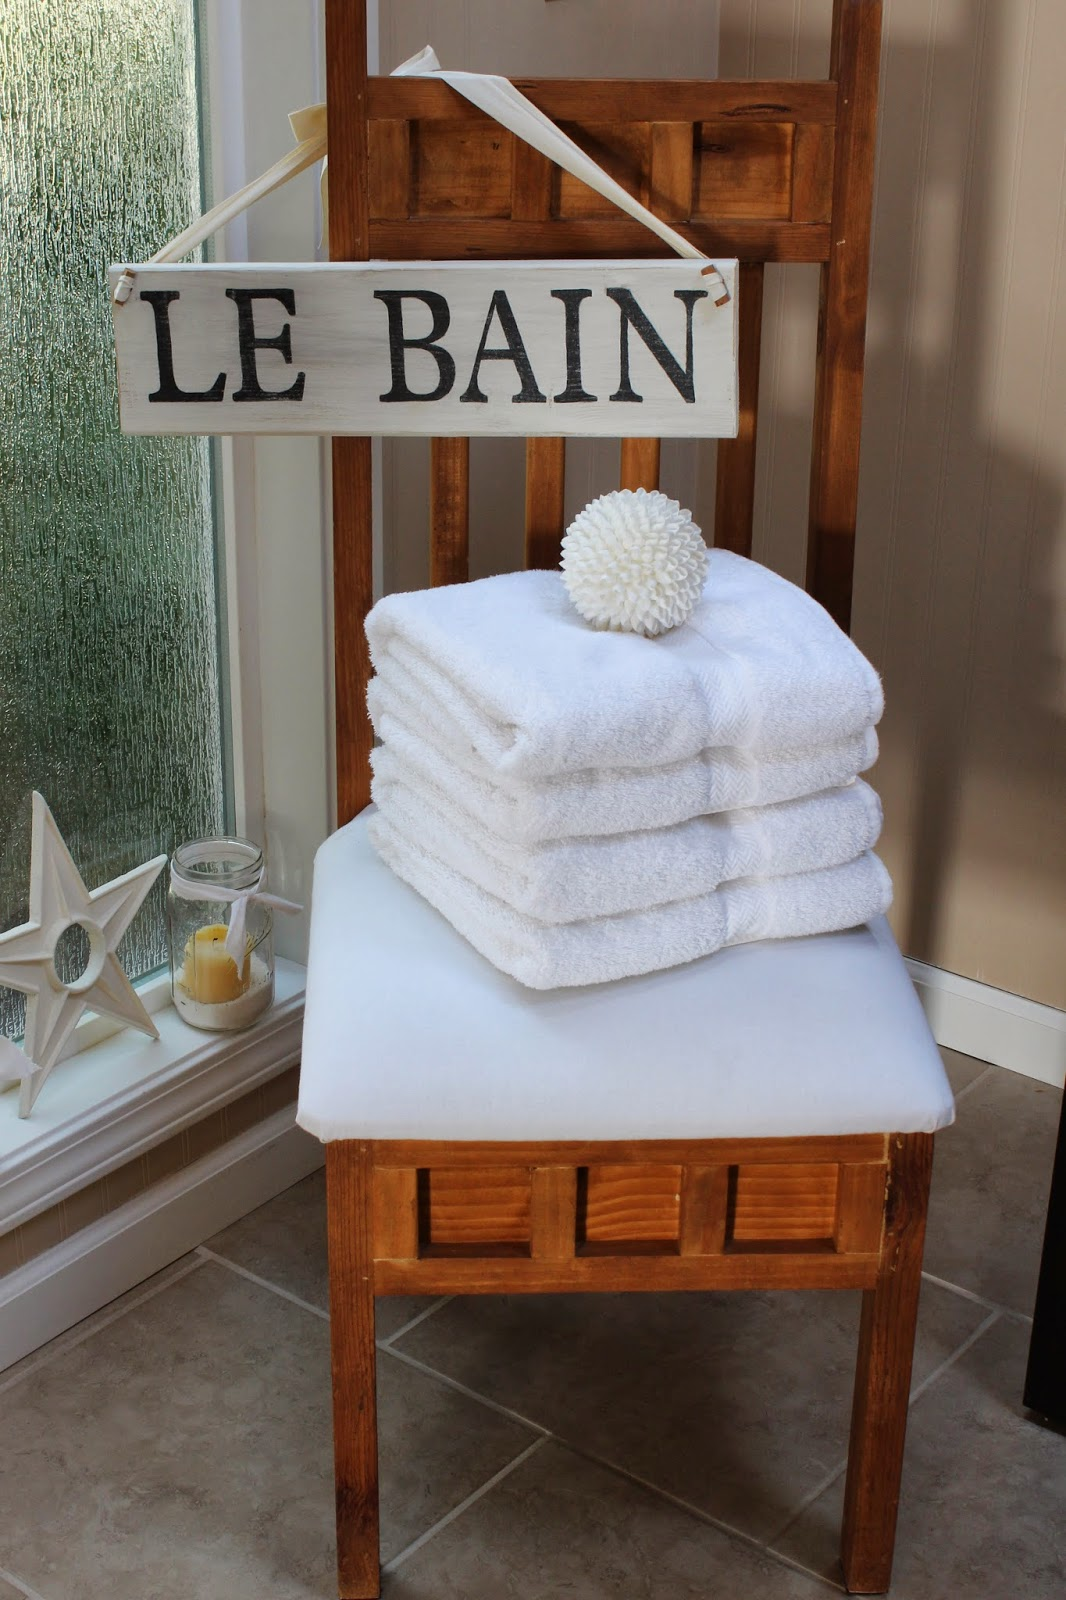 Le Bain Sign Bathroom. Girly Bathroom Decor